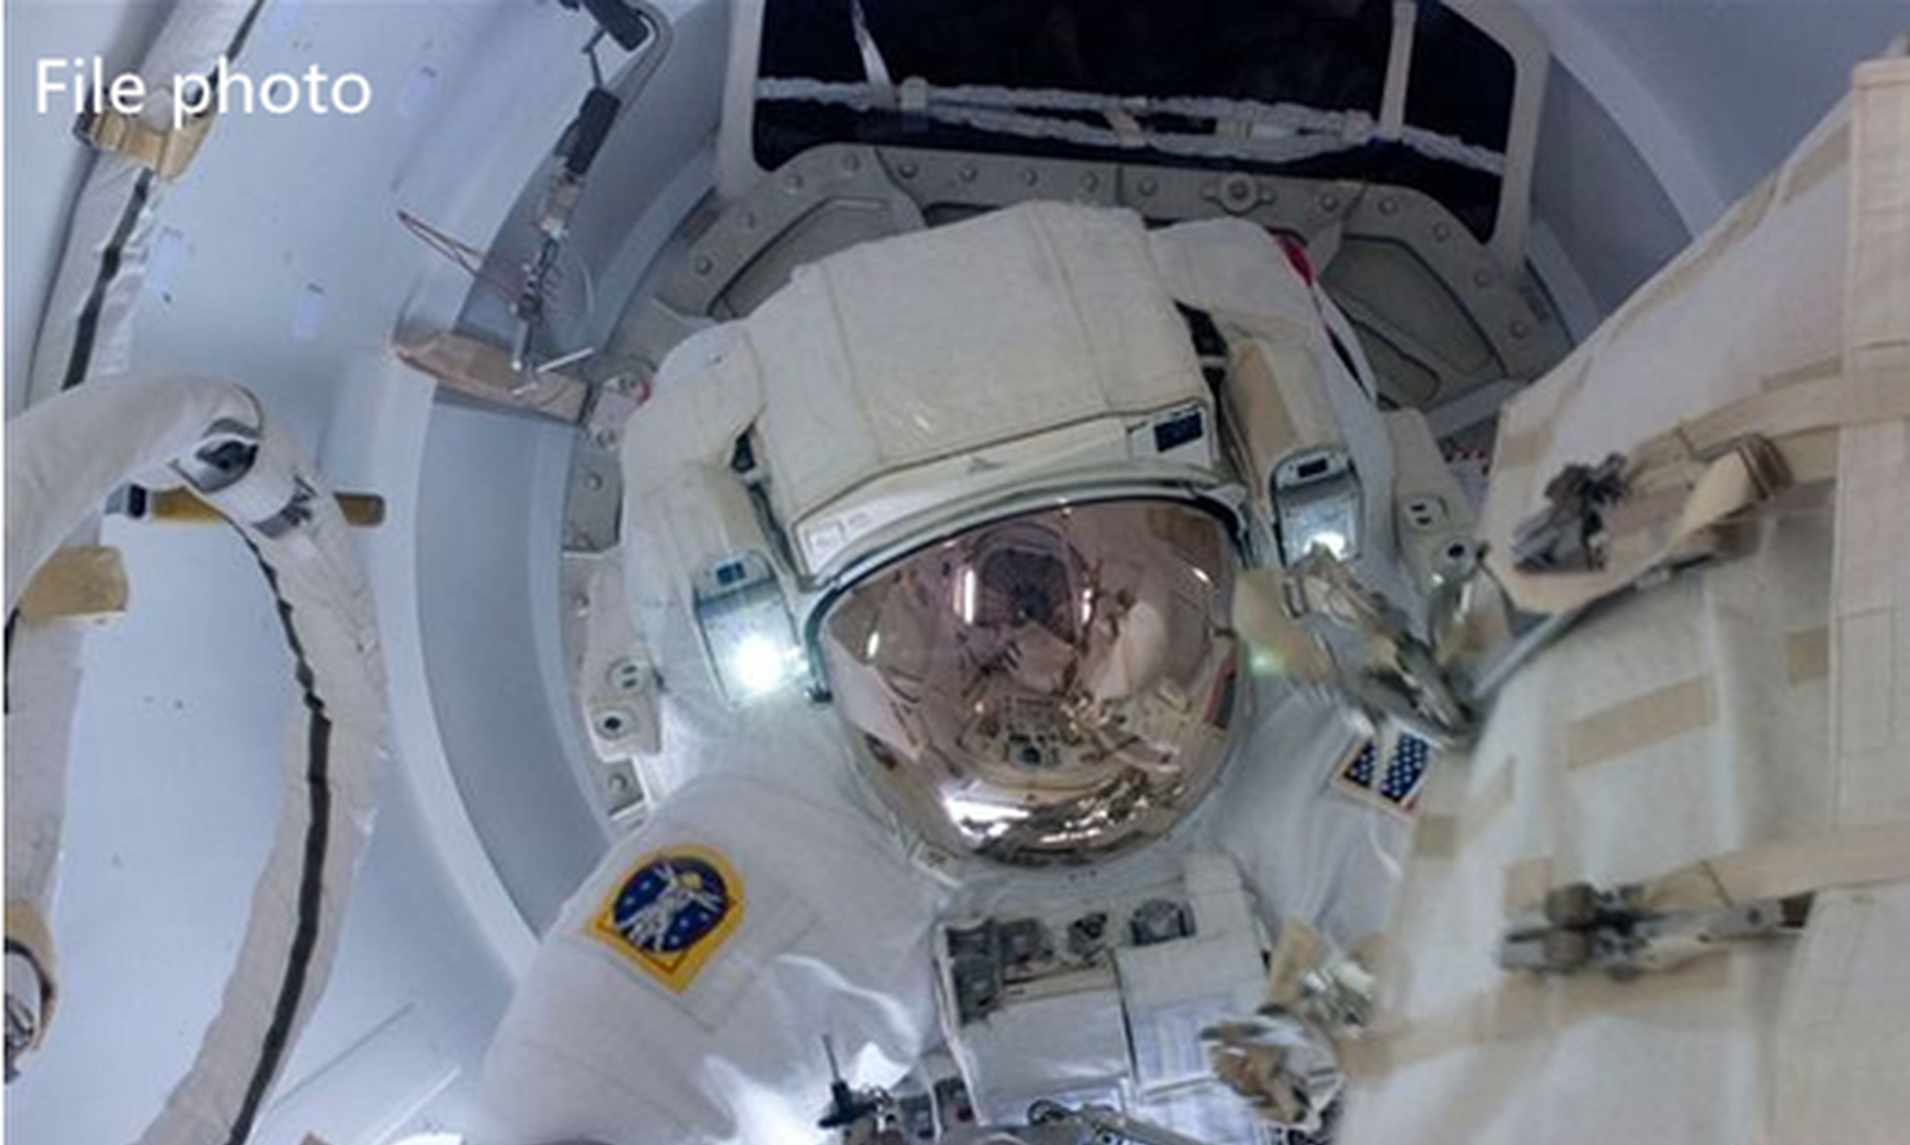 Chinese astronauts in EVA training for space station mission